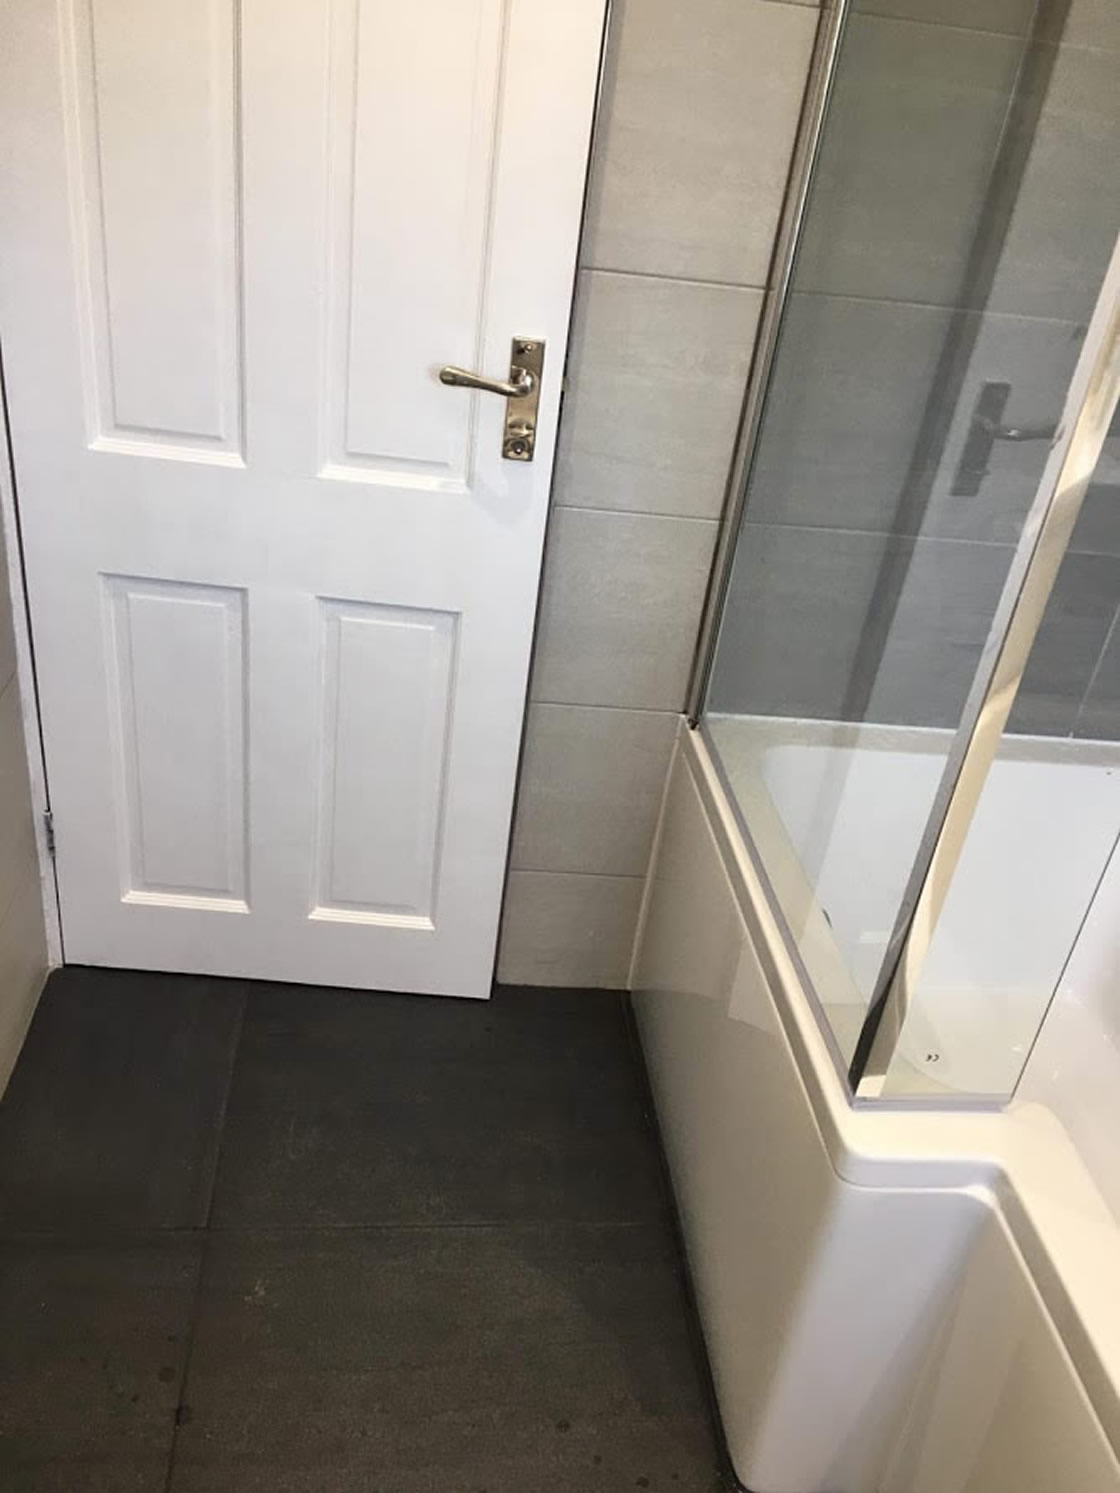 Brooklands Bathroom Redhill Completed (10)